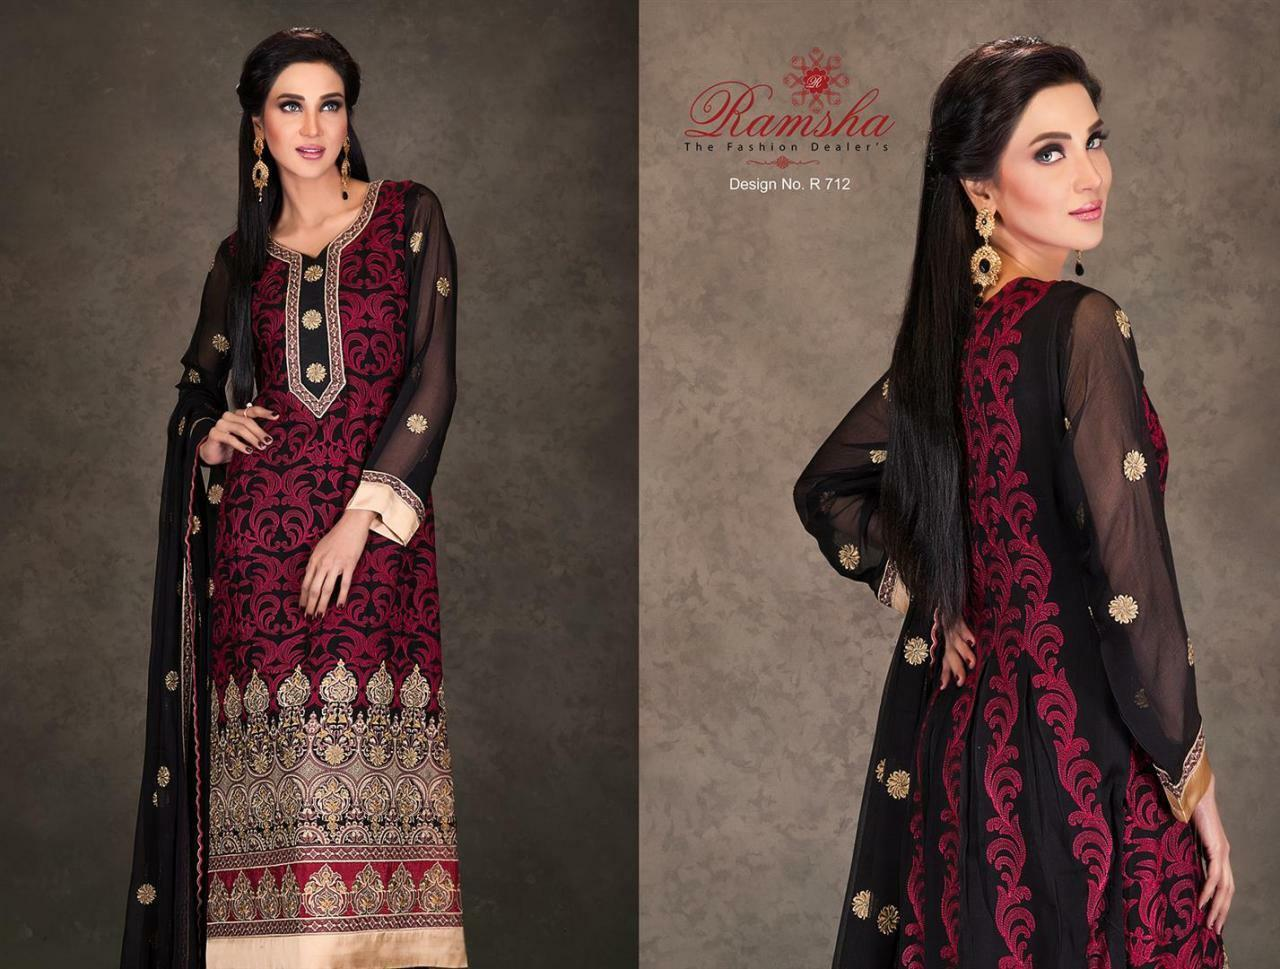 988e2d44b331fa Indian Pakistani Designer Anarkali Salwar Kameez Suit Party Ramsha R712